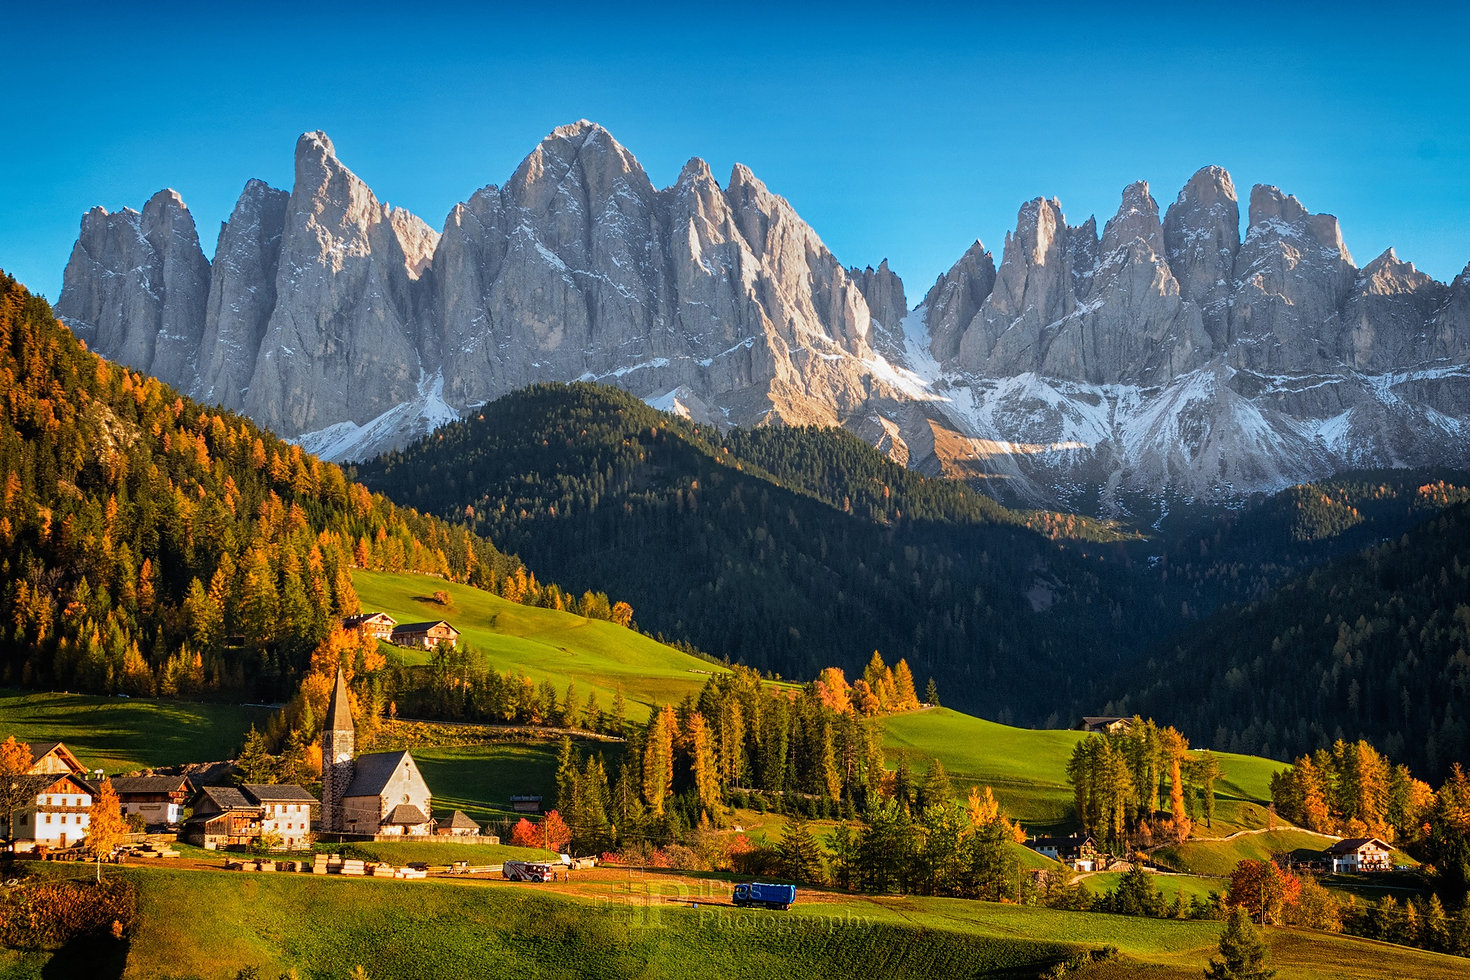 Landscape photo of St. Magdalena or Santa Maddalena village with its church in front of the Geisler Dolomites mountain peaks in the Val di Funes Valley (Villnoesstal) in South Tyrol, Italy in autumn.